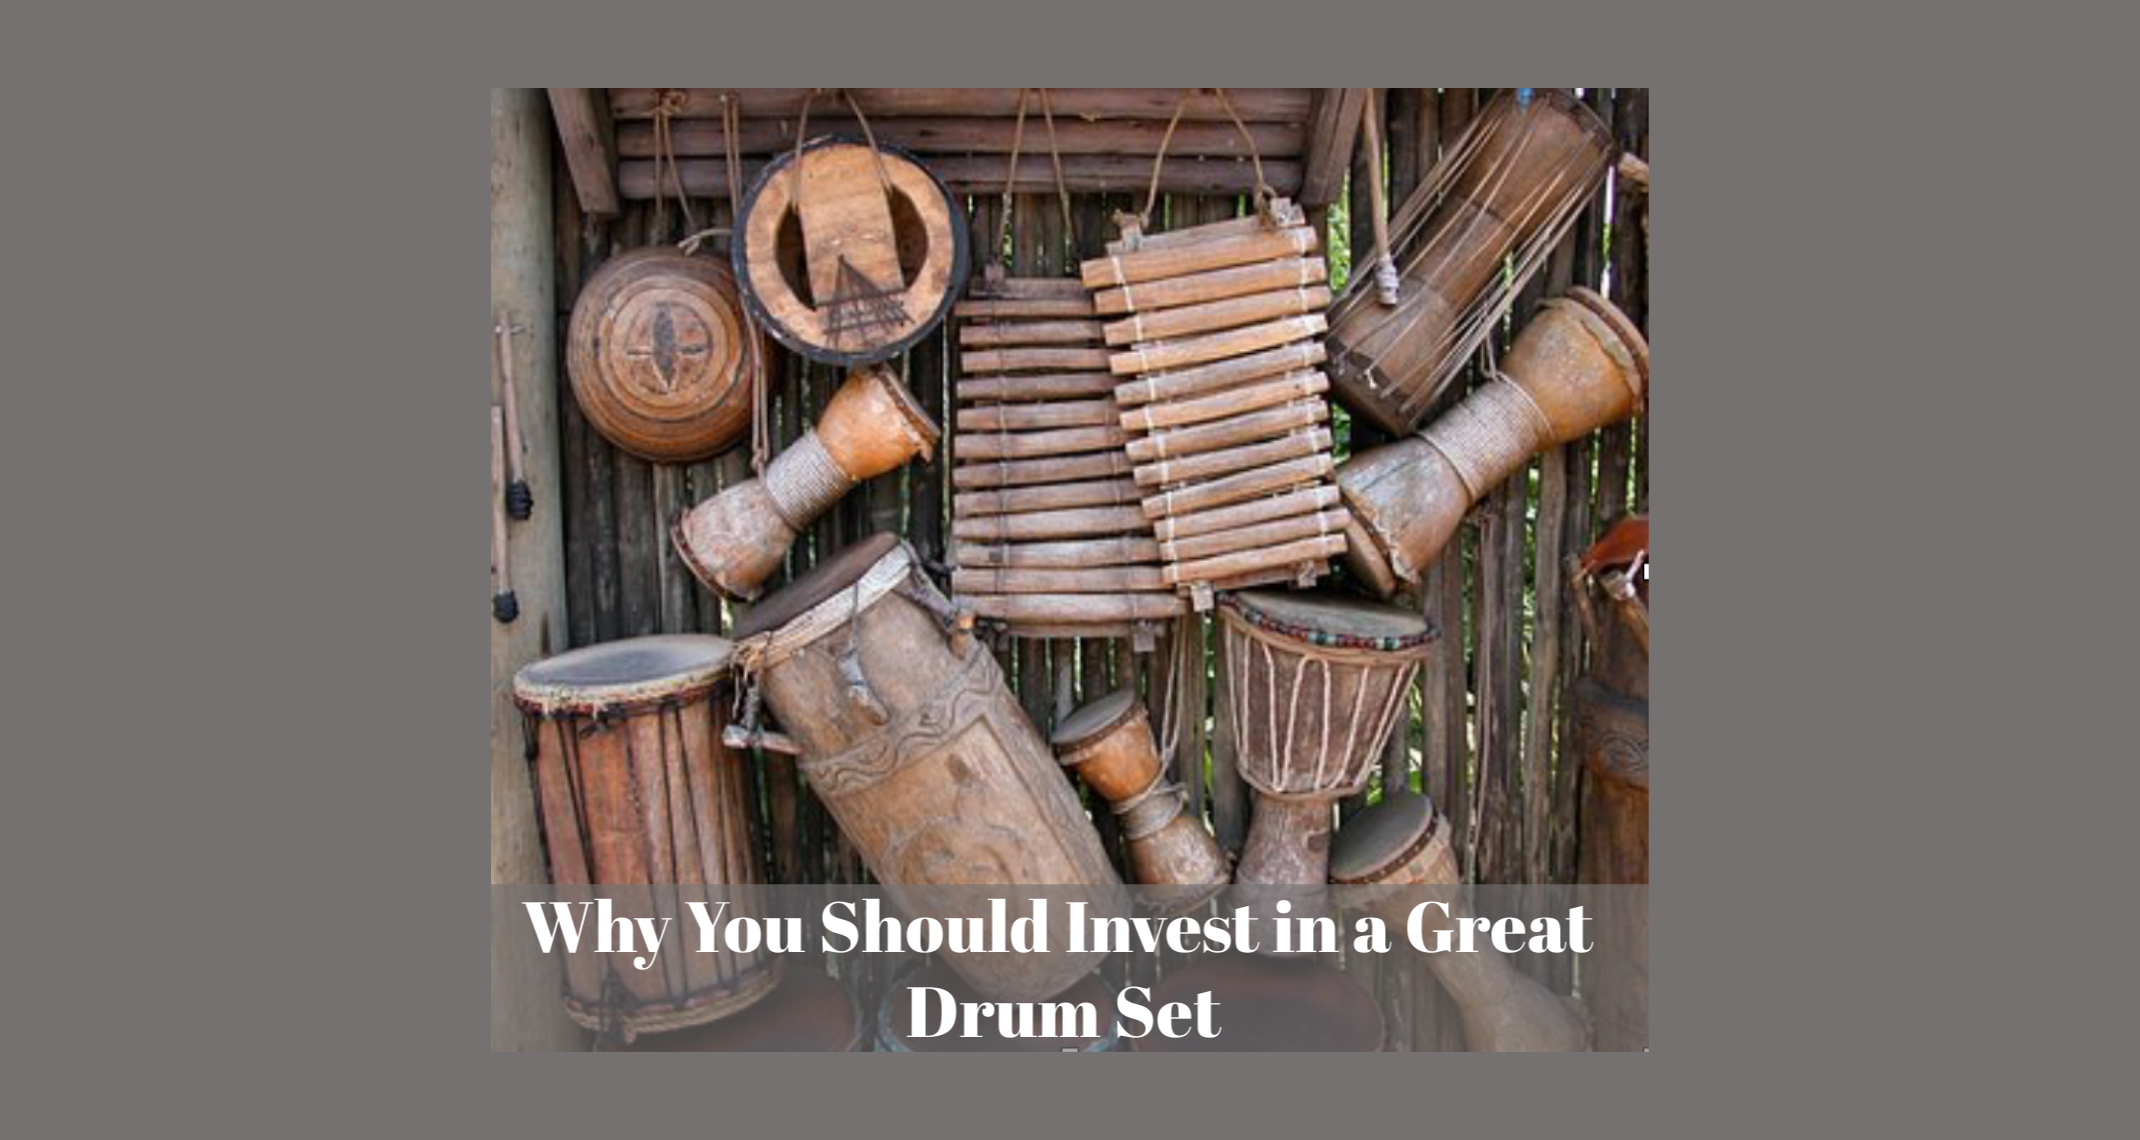 Why You Should Invest in a Great Drum Set